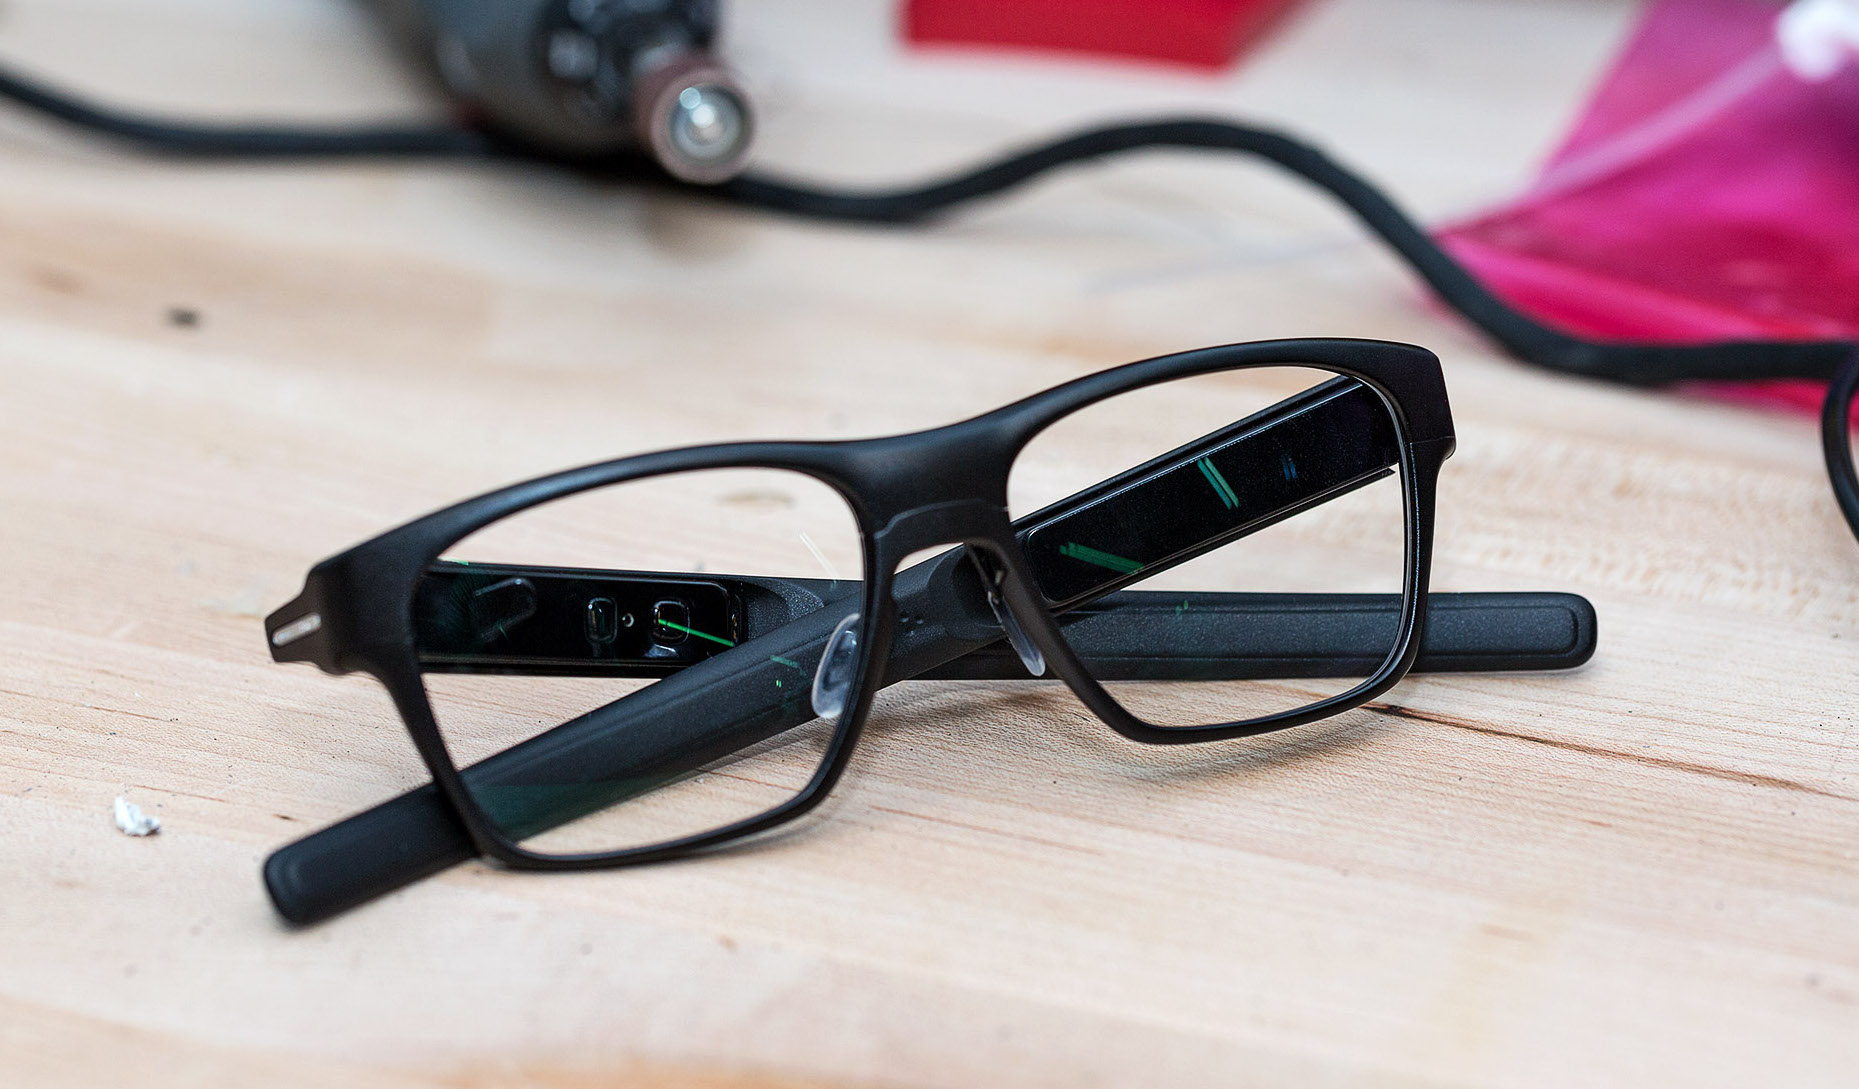 Intel's New Smart Glasses Look Positively Normal